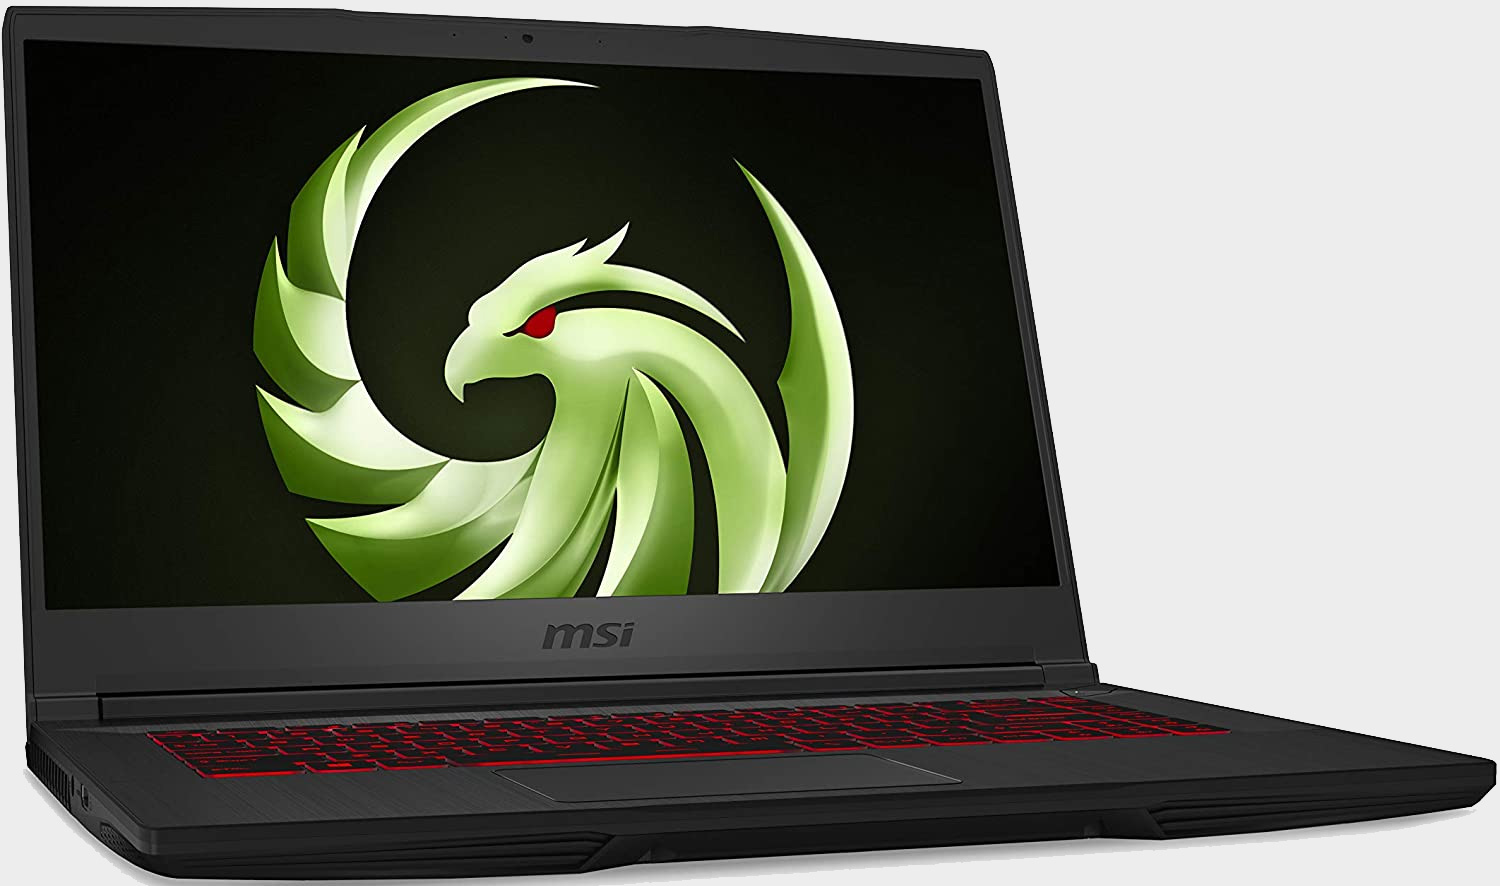 MSI's Bravo 15 is another aggressively priced AMD Ryzen gaming laptop